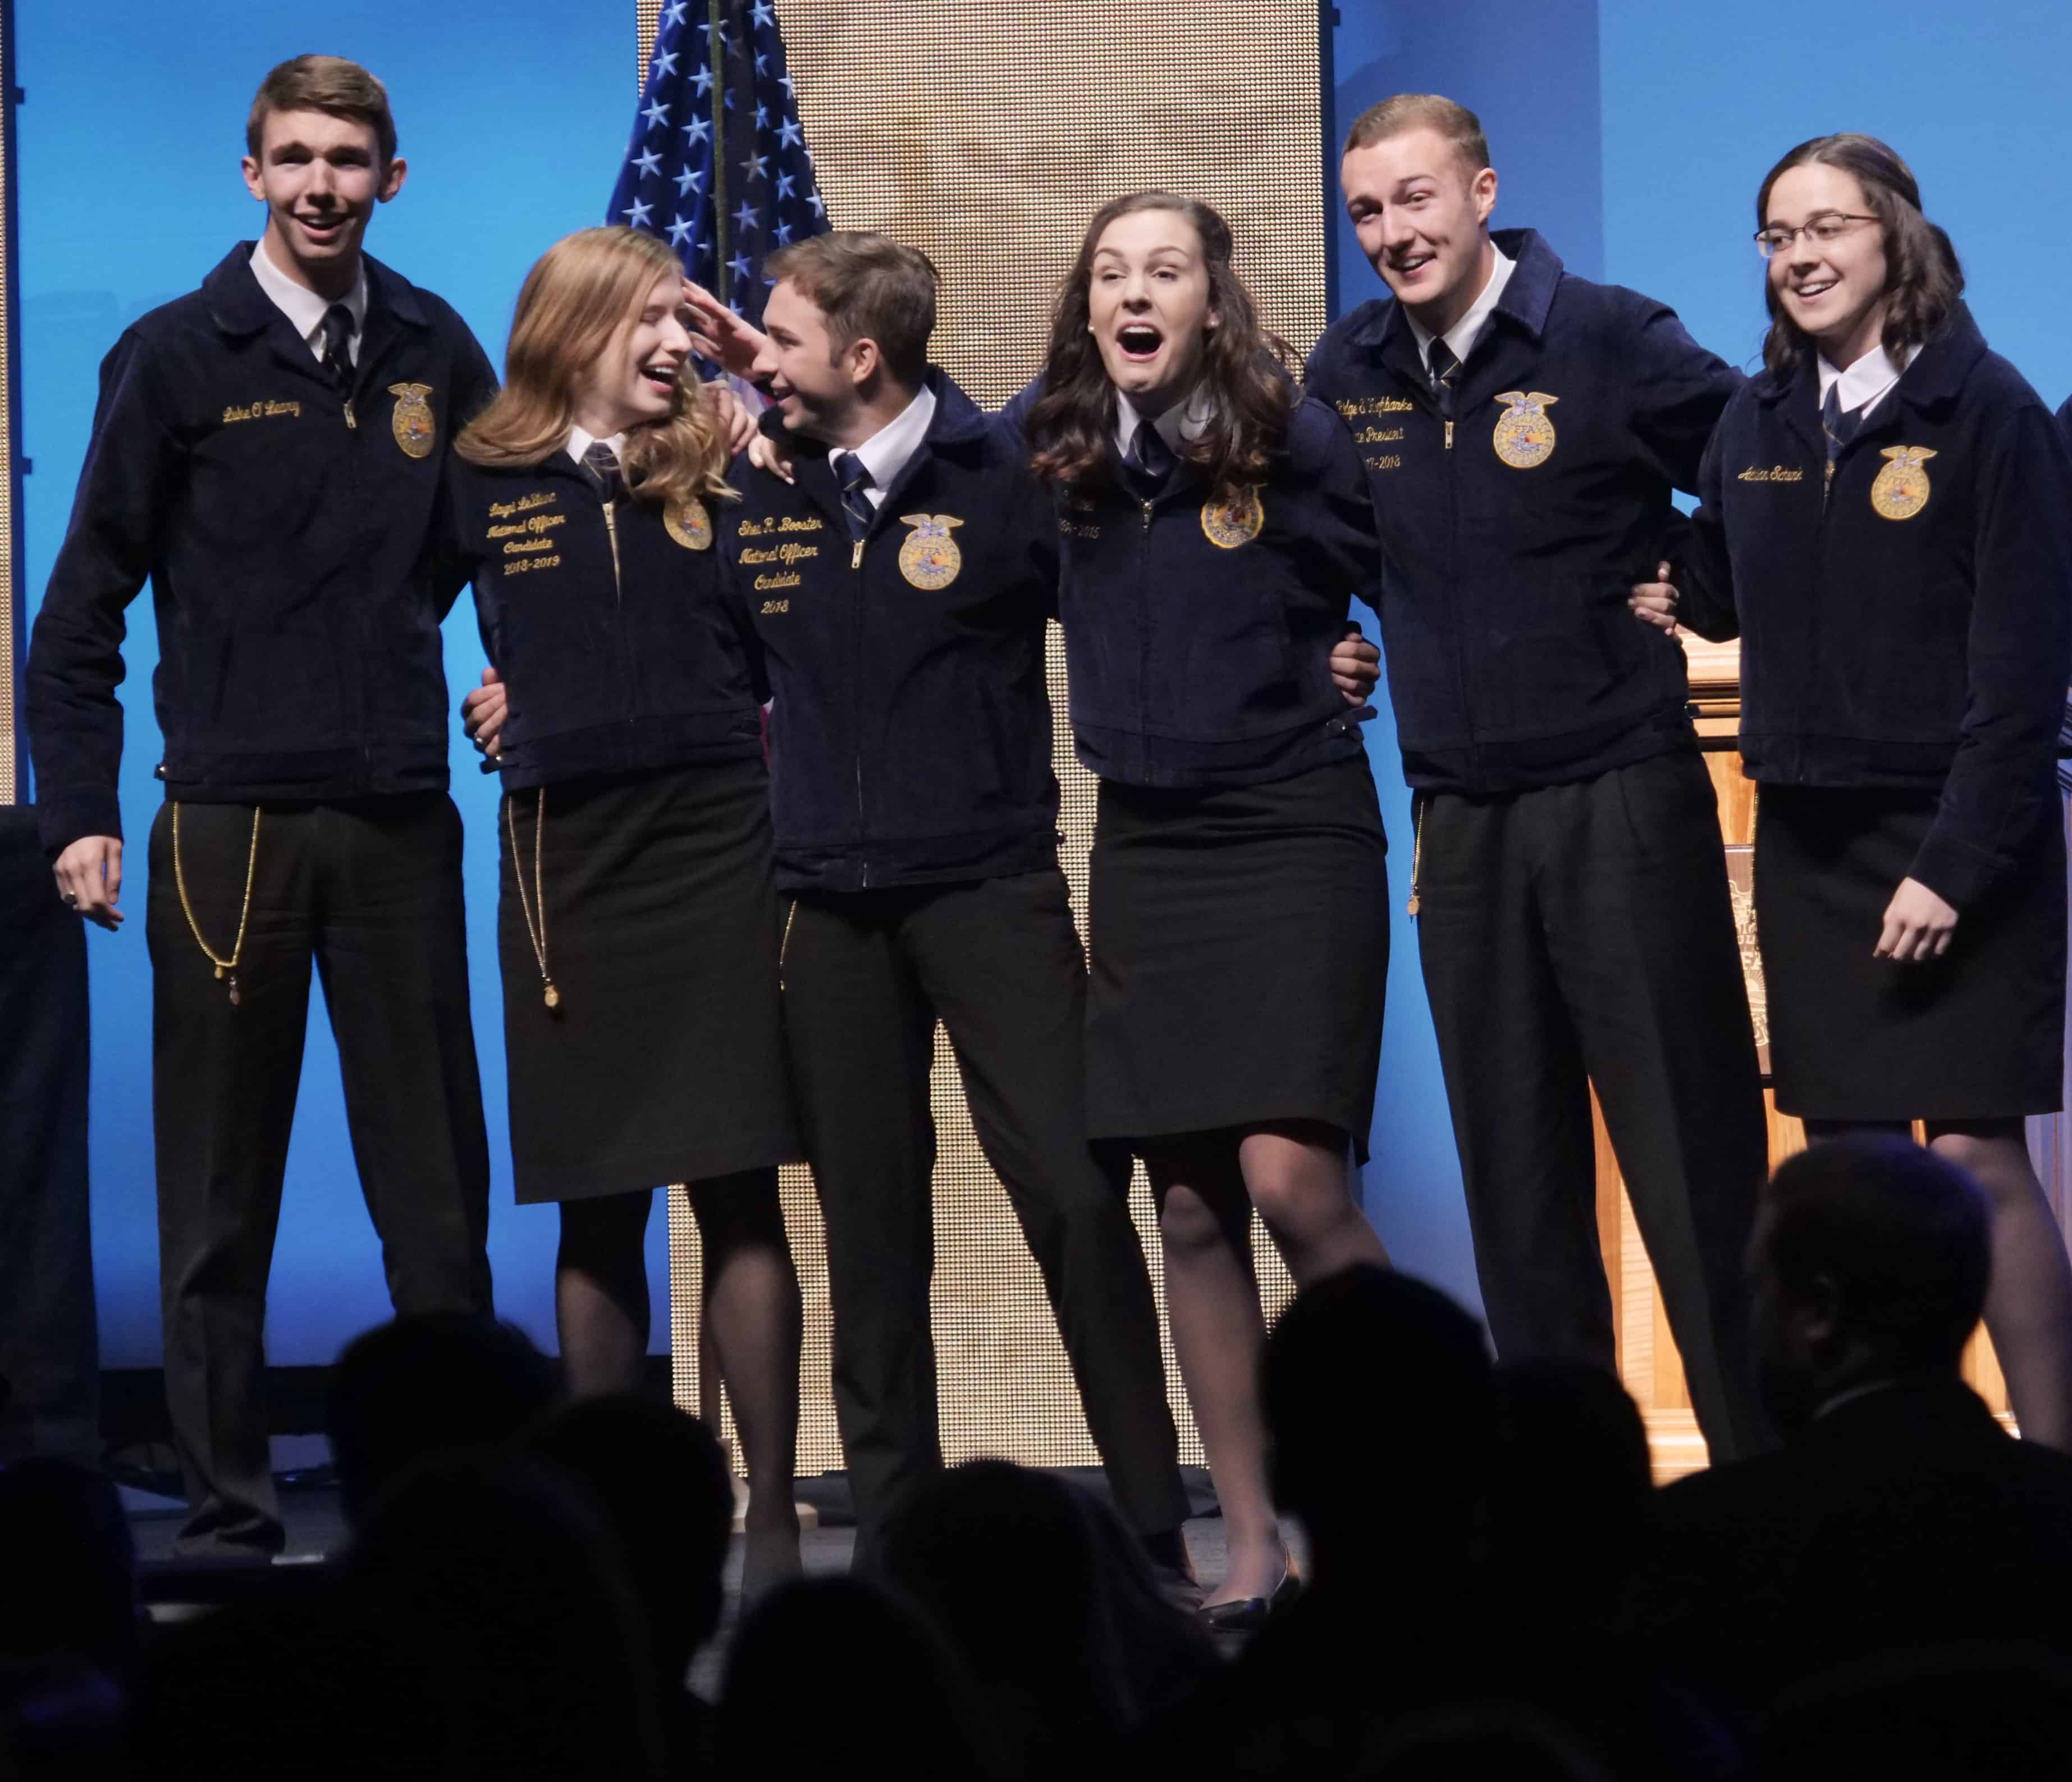 25 National Officer Candidates Advance To Phase 2 Of The